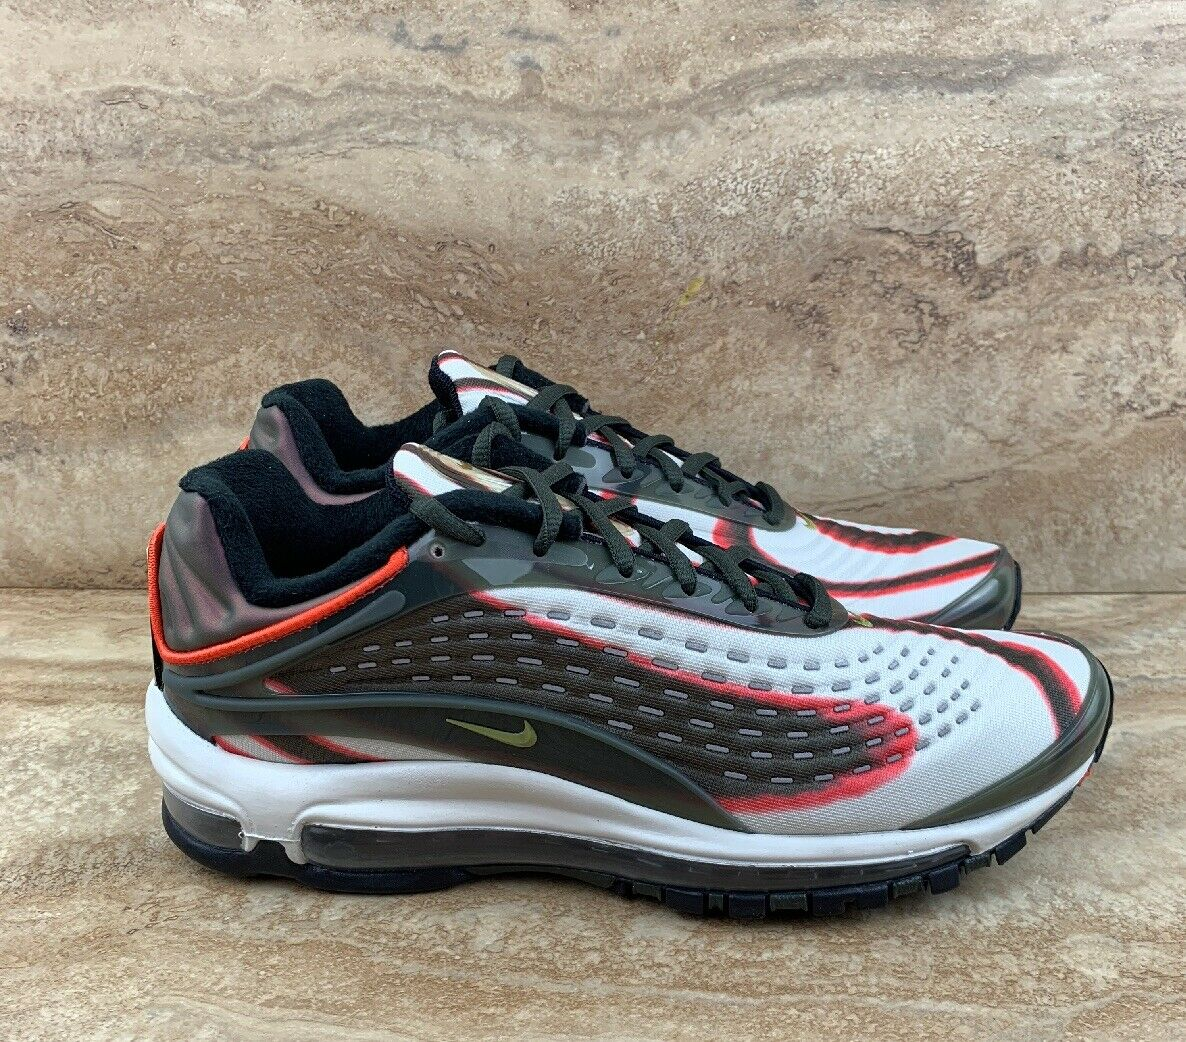 Nike Air Max Deluxe Men's Running shoes Sequoia Green